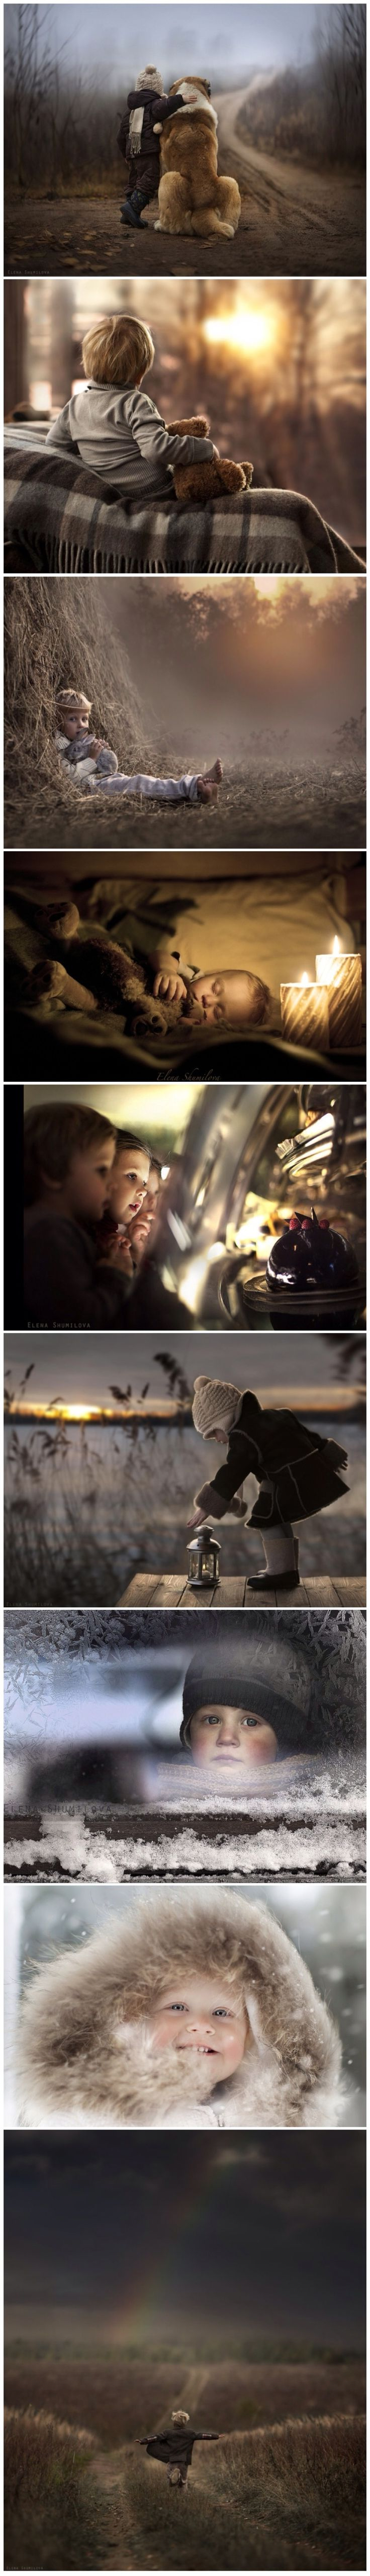 Elena Shumilova Takes Magical Pictures of Her Two Kids and Animals On Her Farm